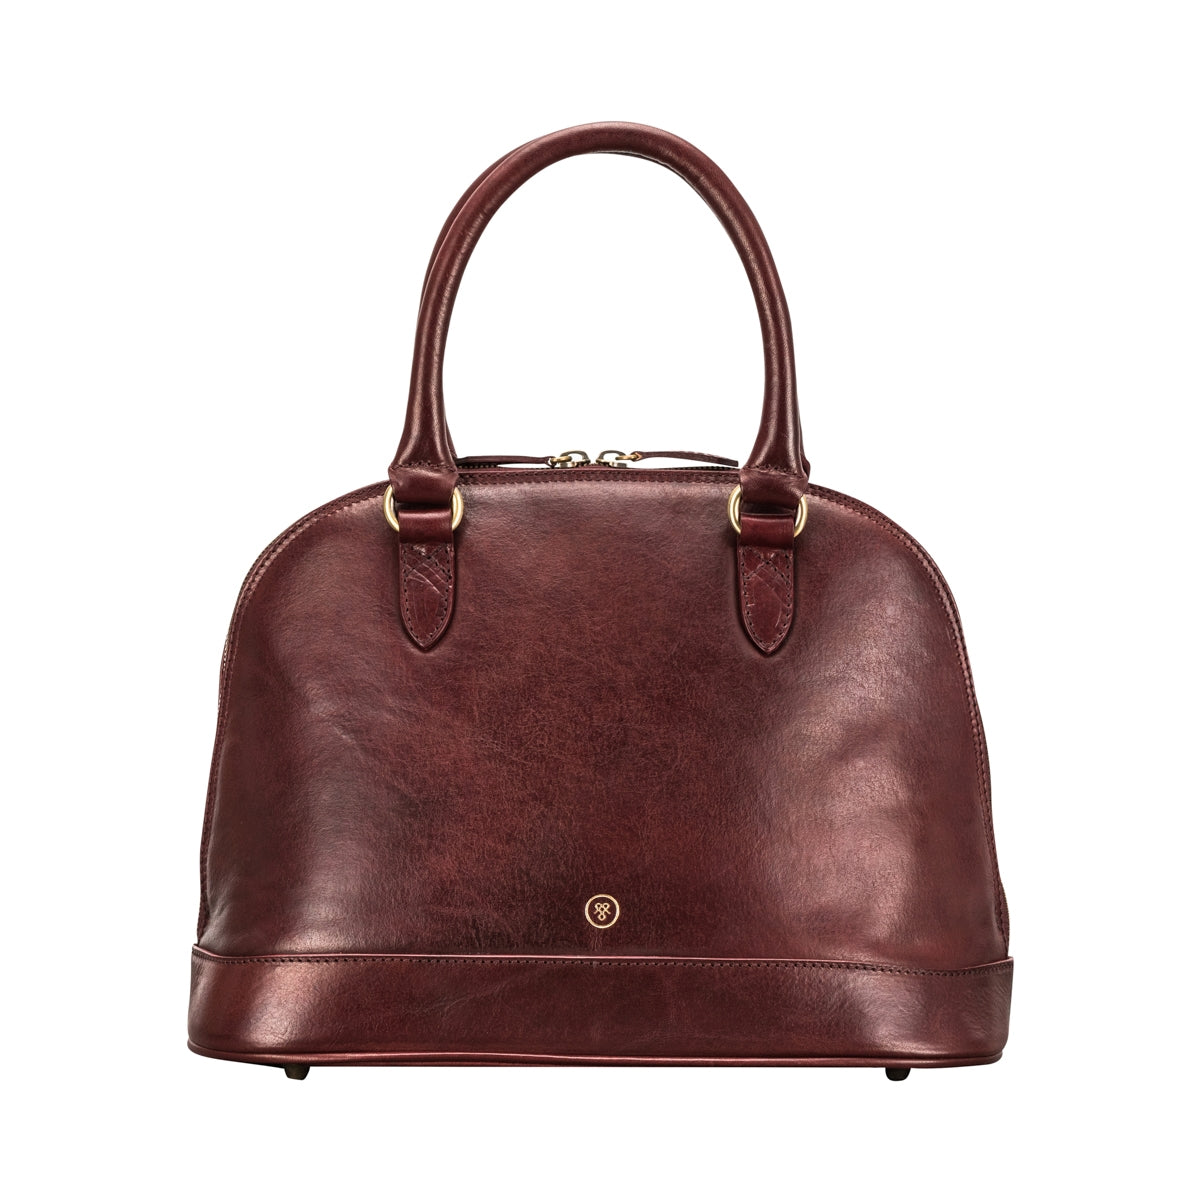 Image 1 of the 'Rosa' Italian Wine Leather Classic Ladies Handbag